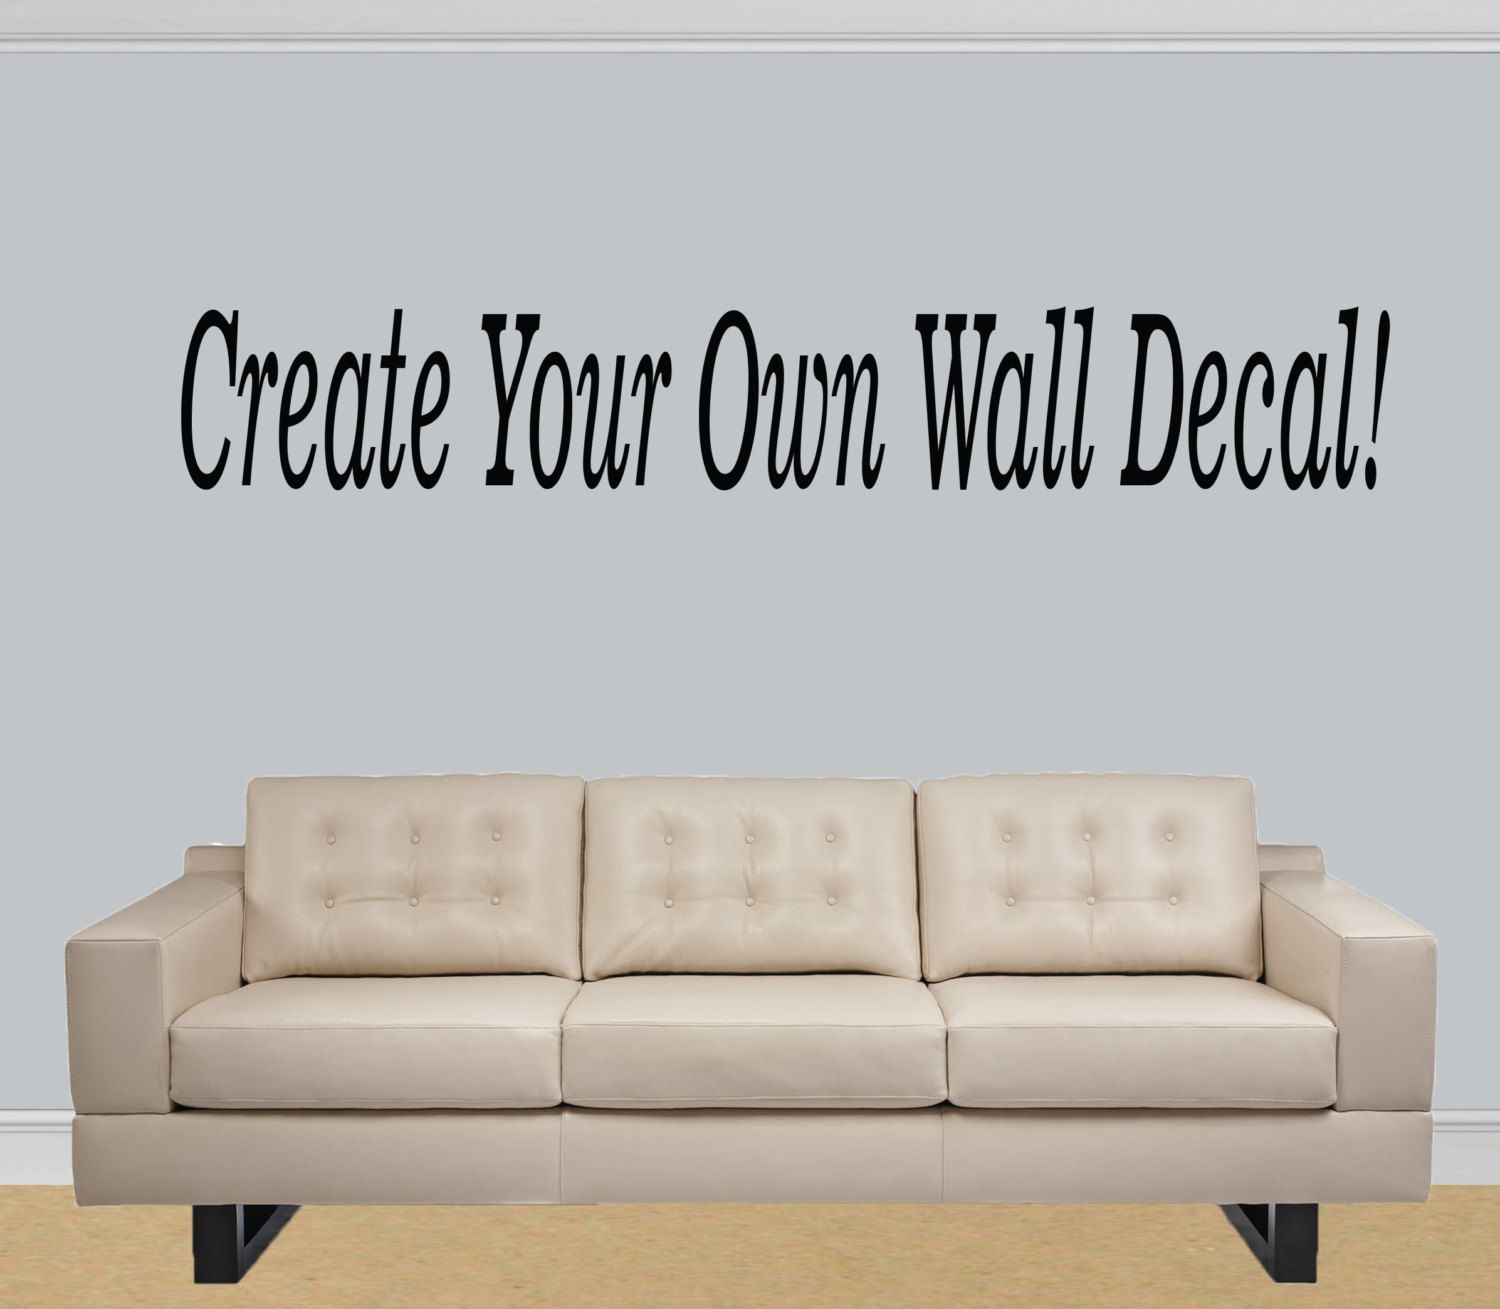 Design your own wall decal quote custom make by diyvinyldesigns 42 00